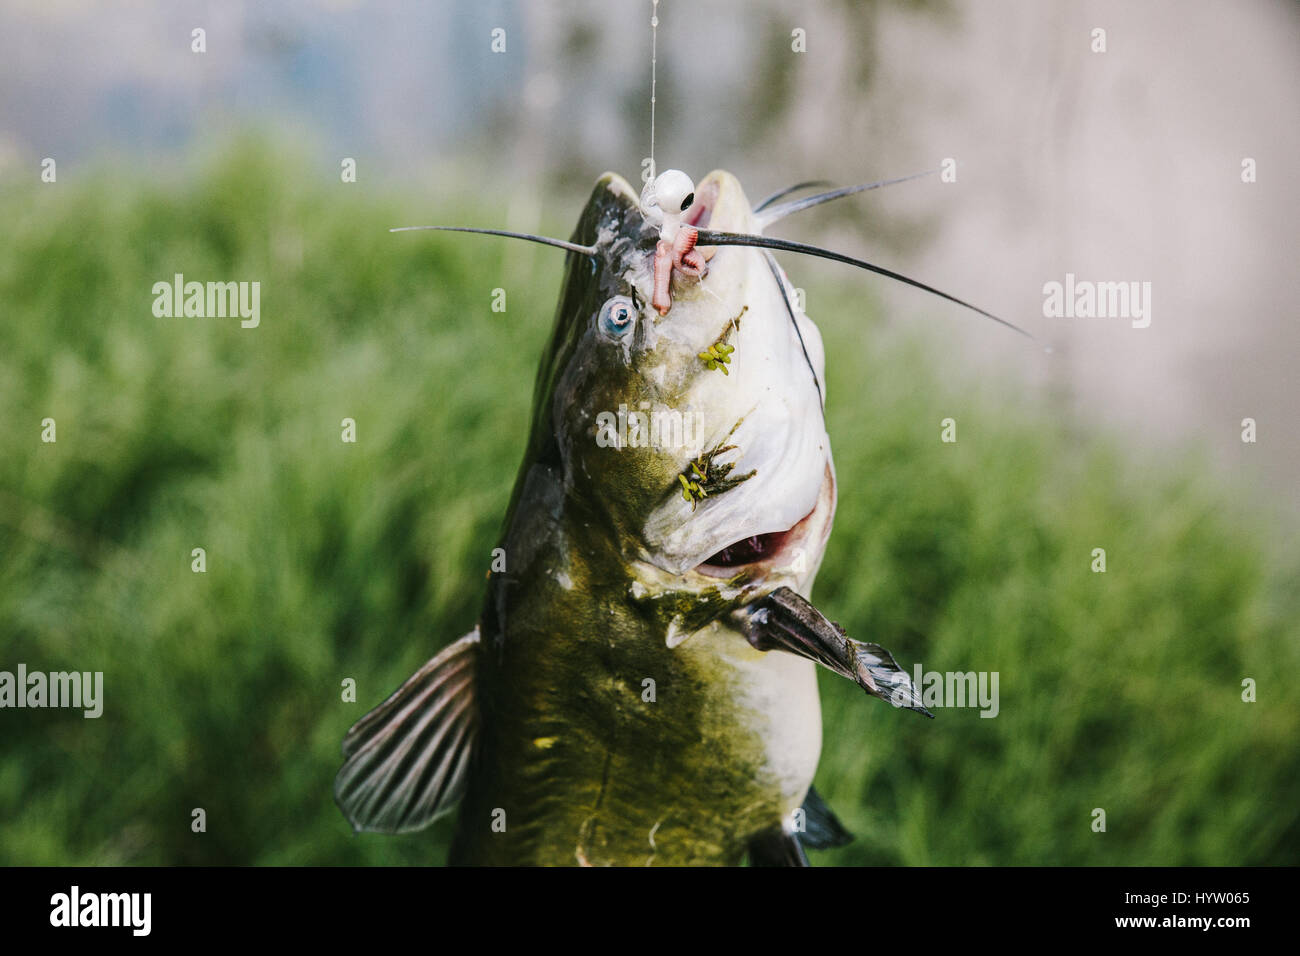 Caught Catfish on a Fishing Line in Texas, USA - Stock Image